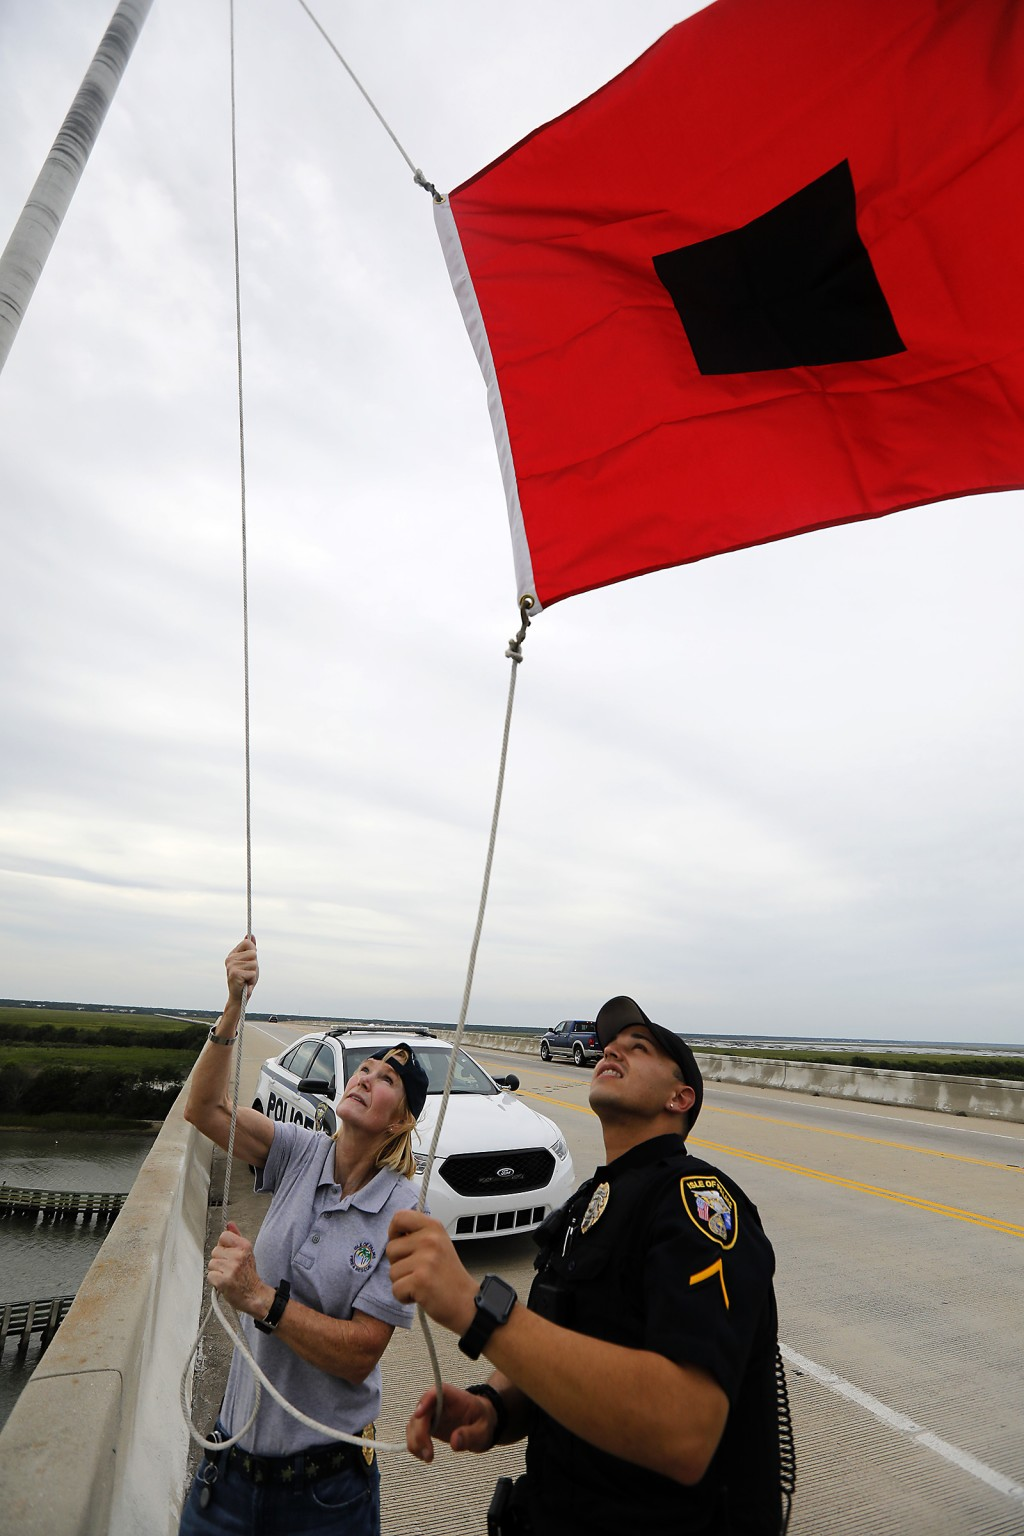 Isle of Palms Fire Chief Ann Graham, at left, and Isle of Palms police officer Thomas Molino III raise a tropical storm warning flag over the Isle of